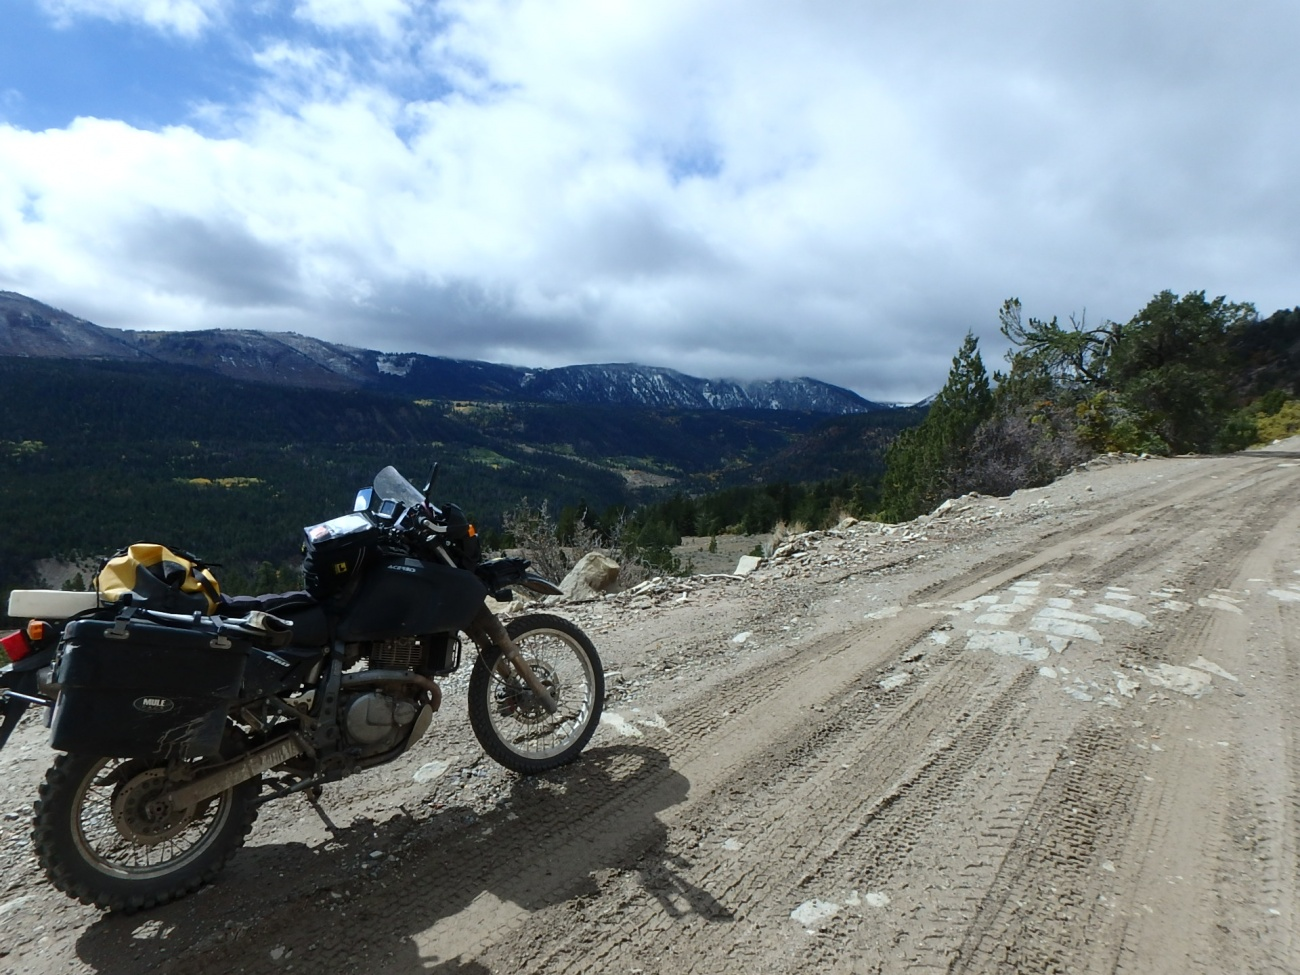 DR650, a View, and Snow